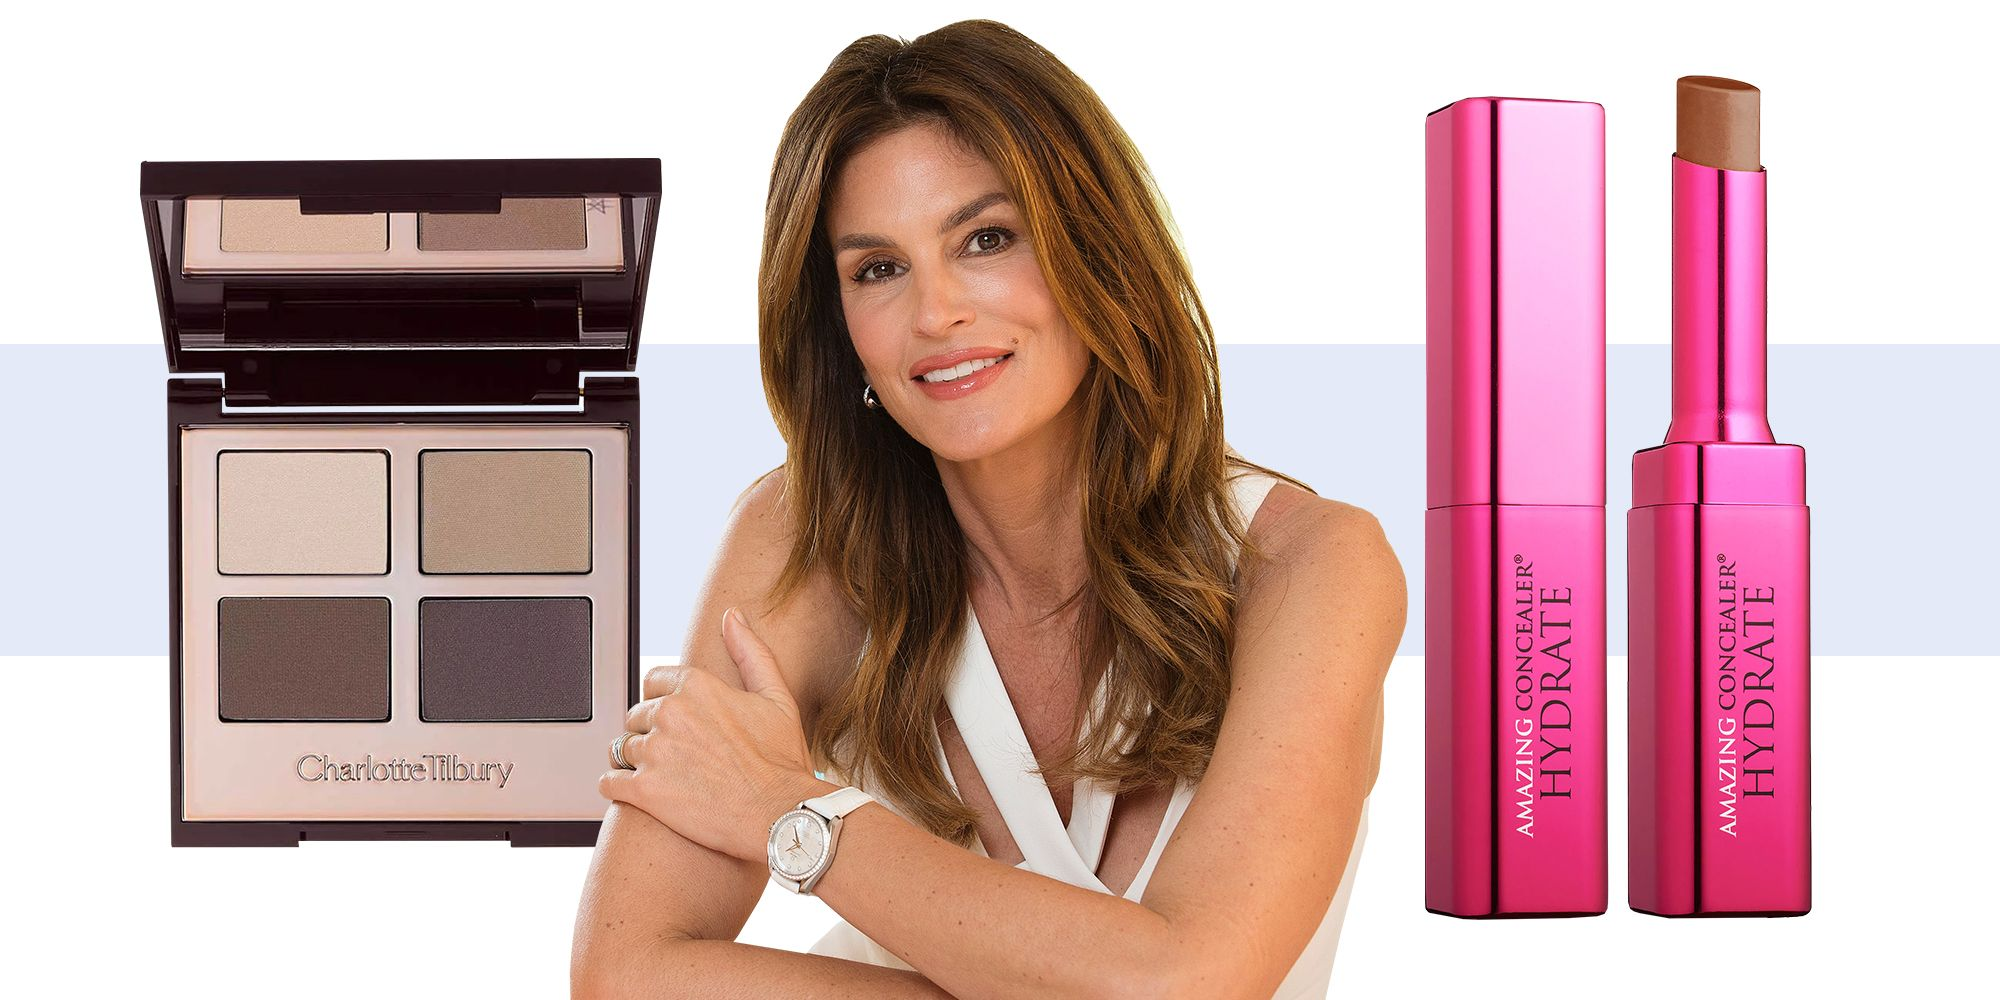 The 15 Beauty Products to Steal From Cindy Crawford's Glam Routine